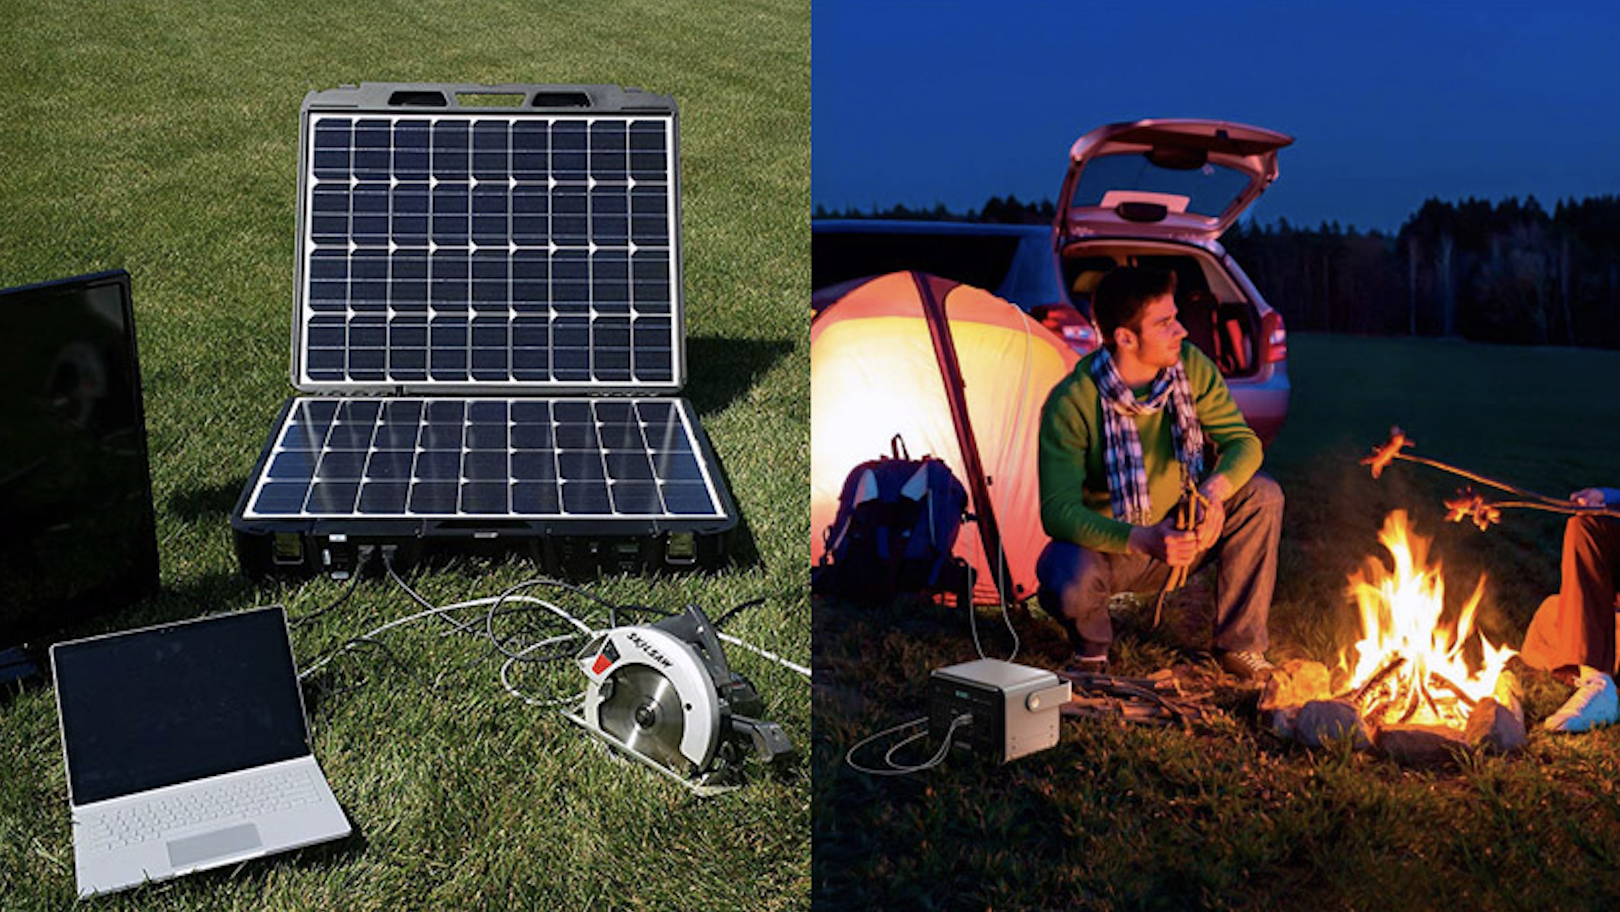 What Are The Best Batteries For Storing Solar Energy?